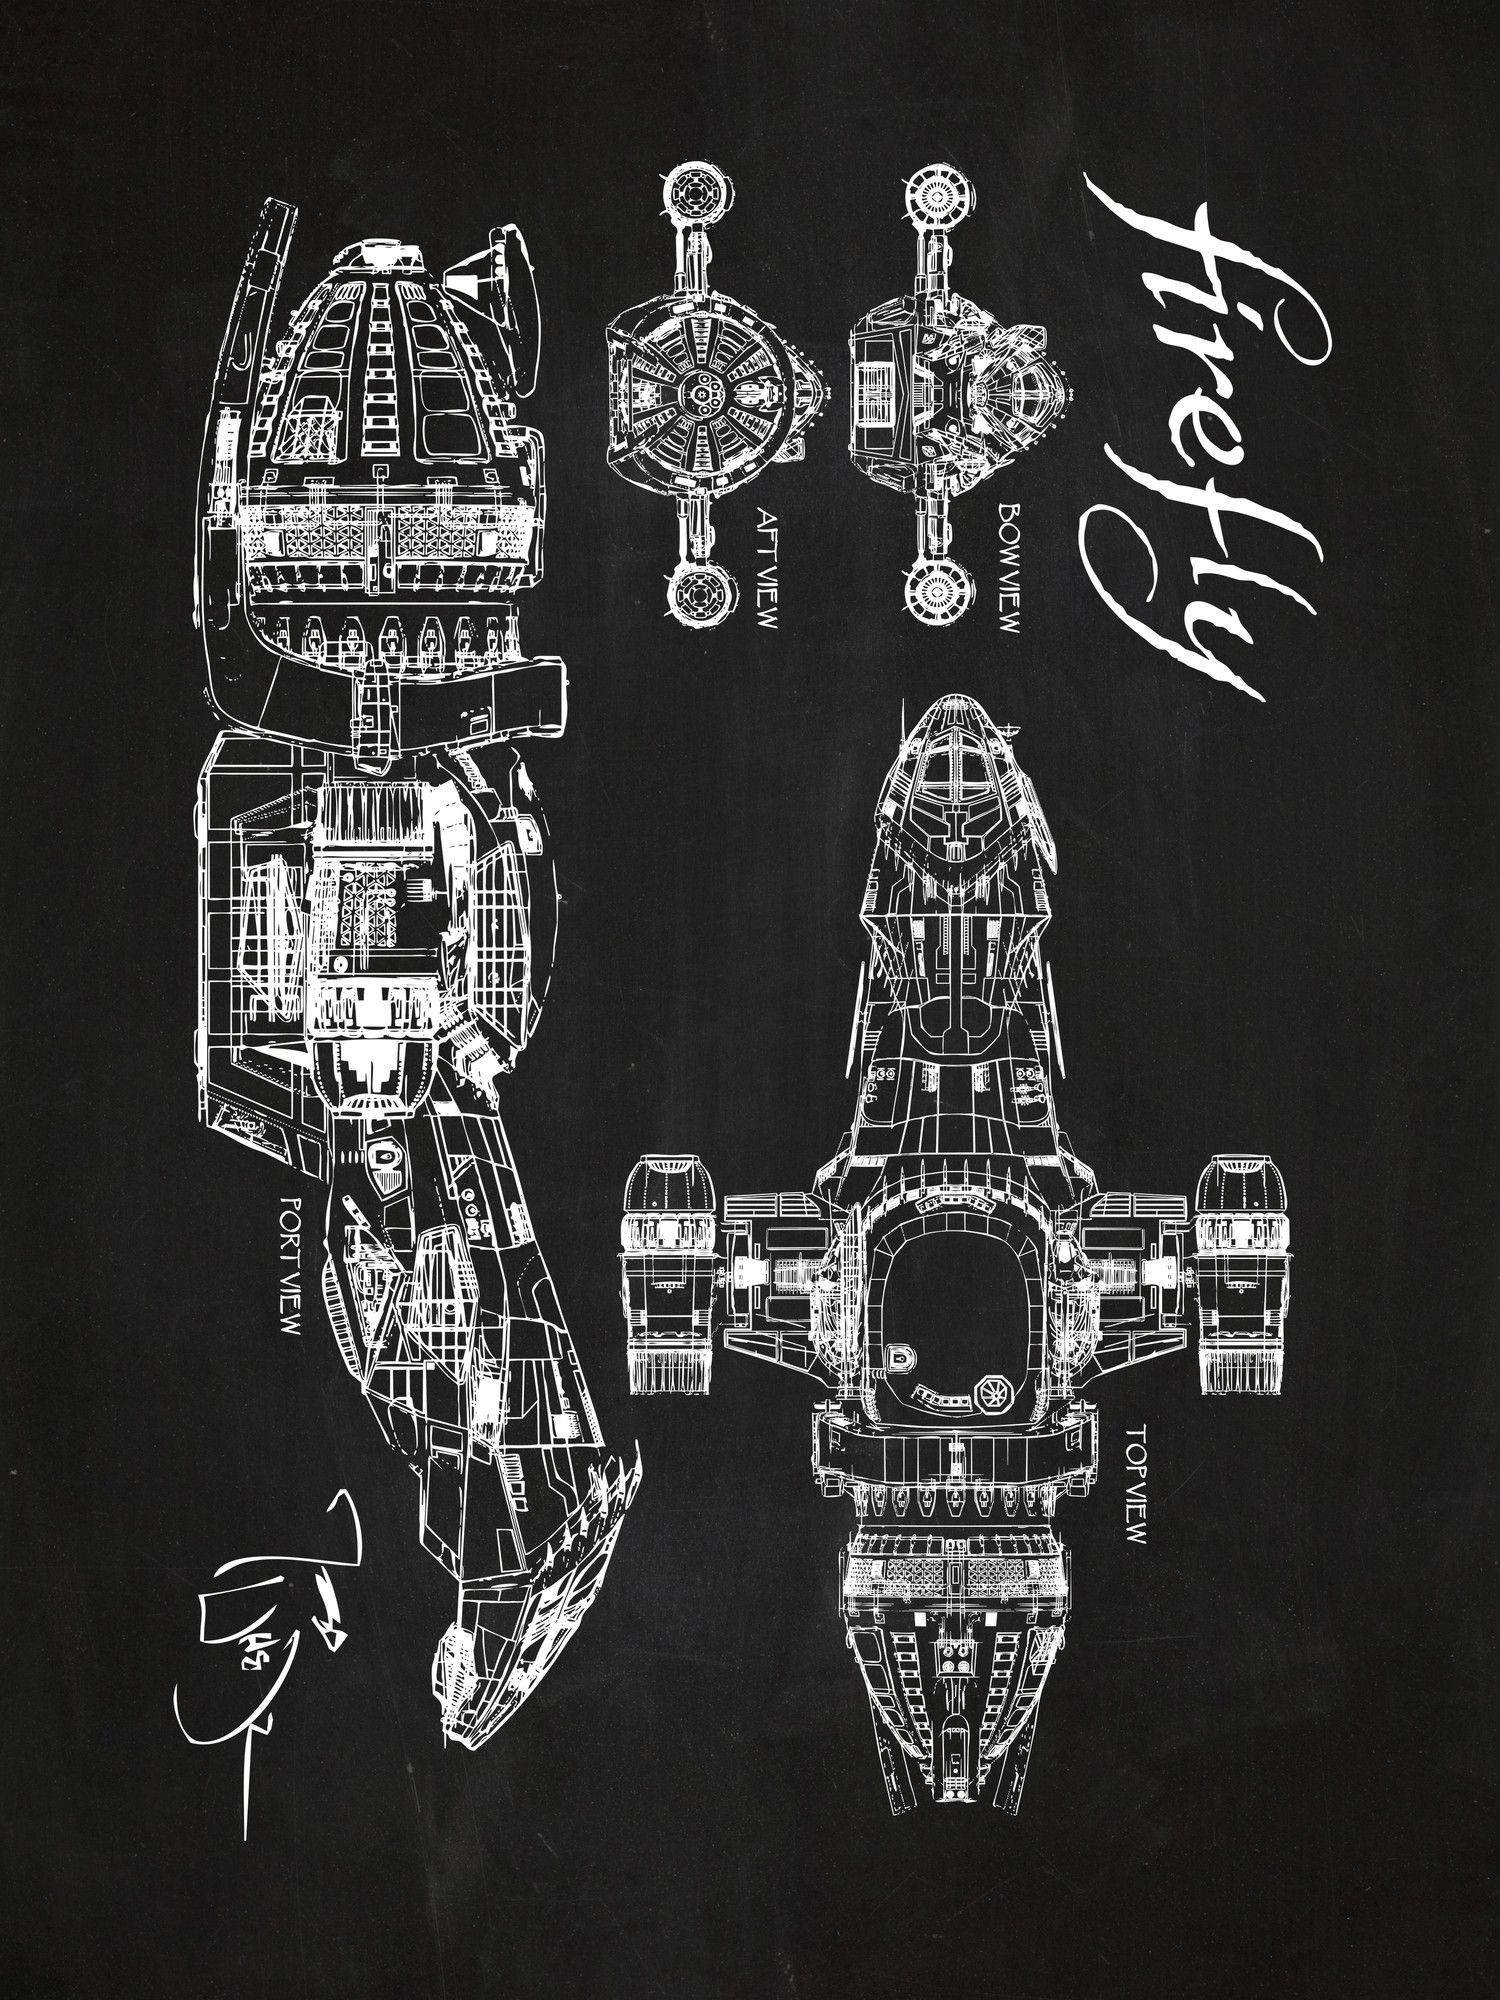 Firefly serenity blueprint graphic art firefly serenity firefly serenity blueprint graphic art malvernweather Choice Image